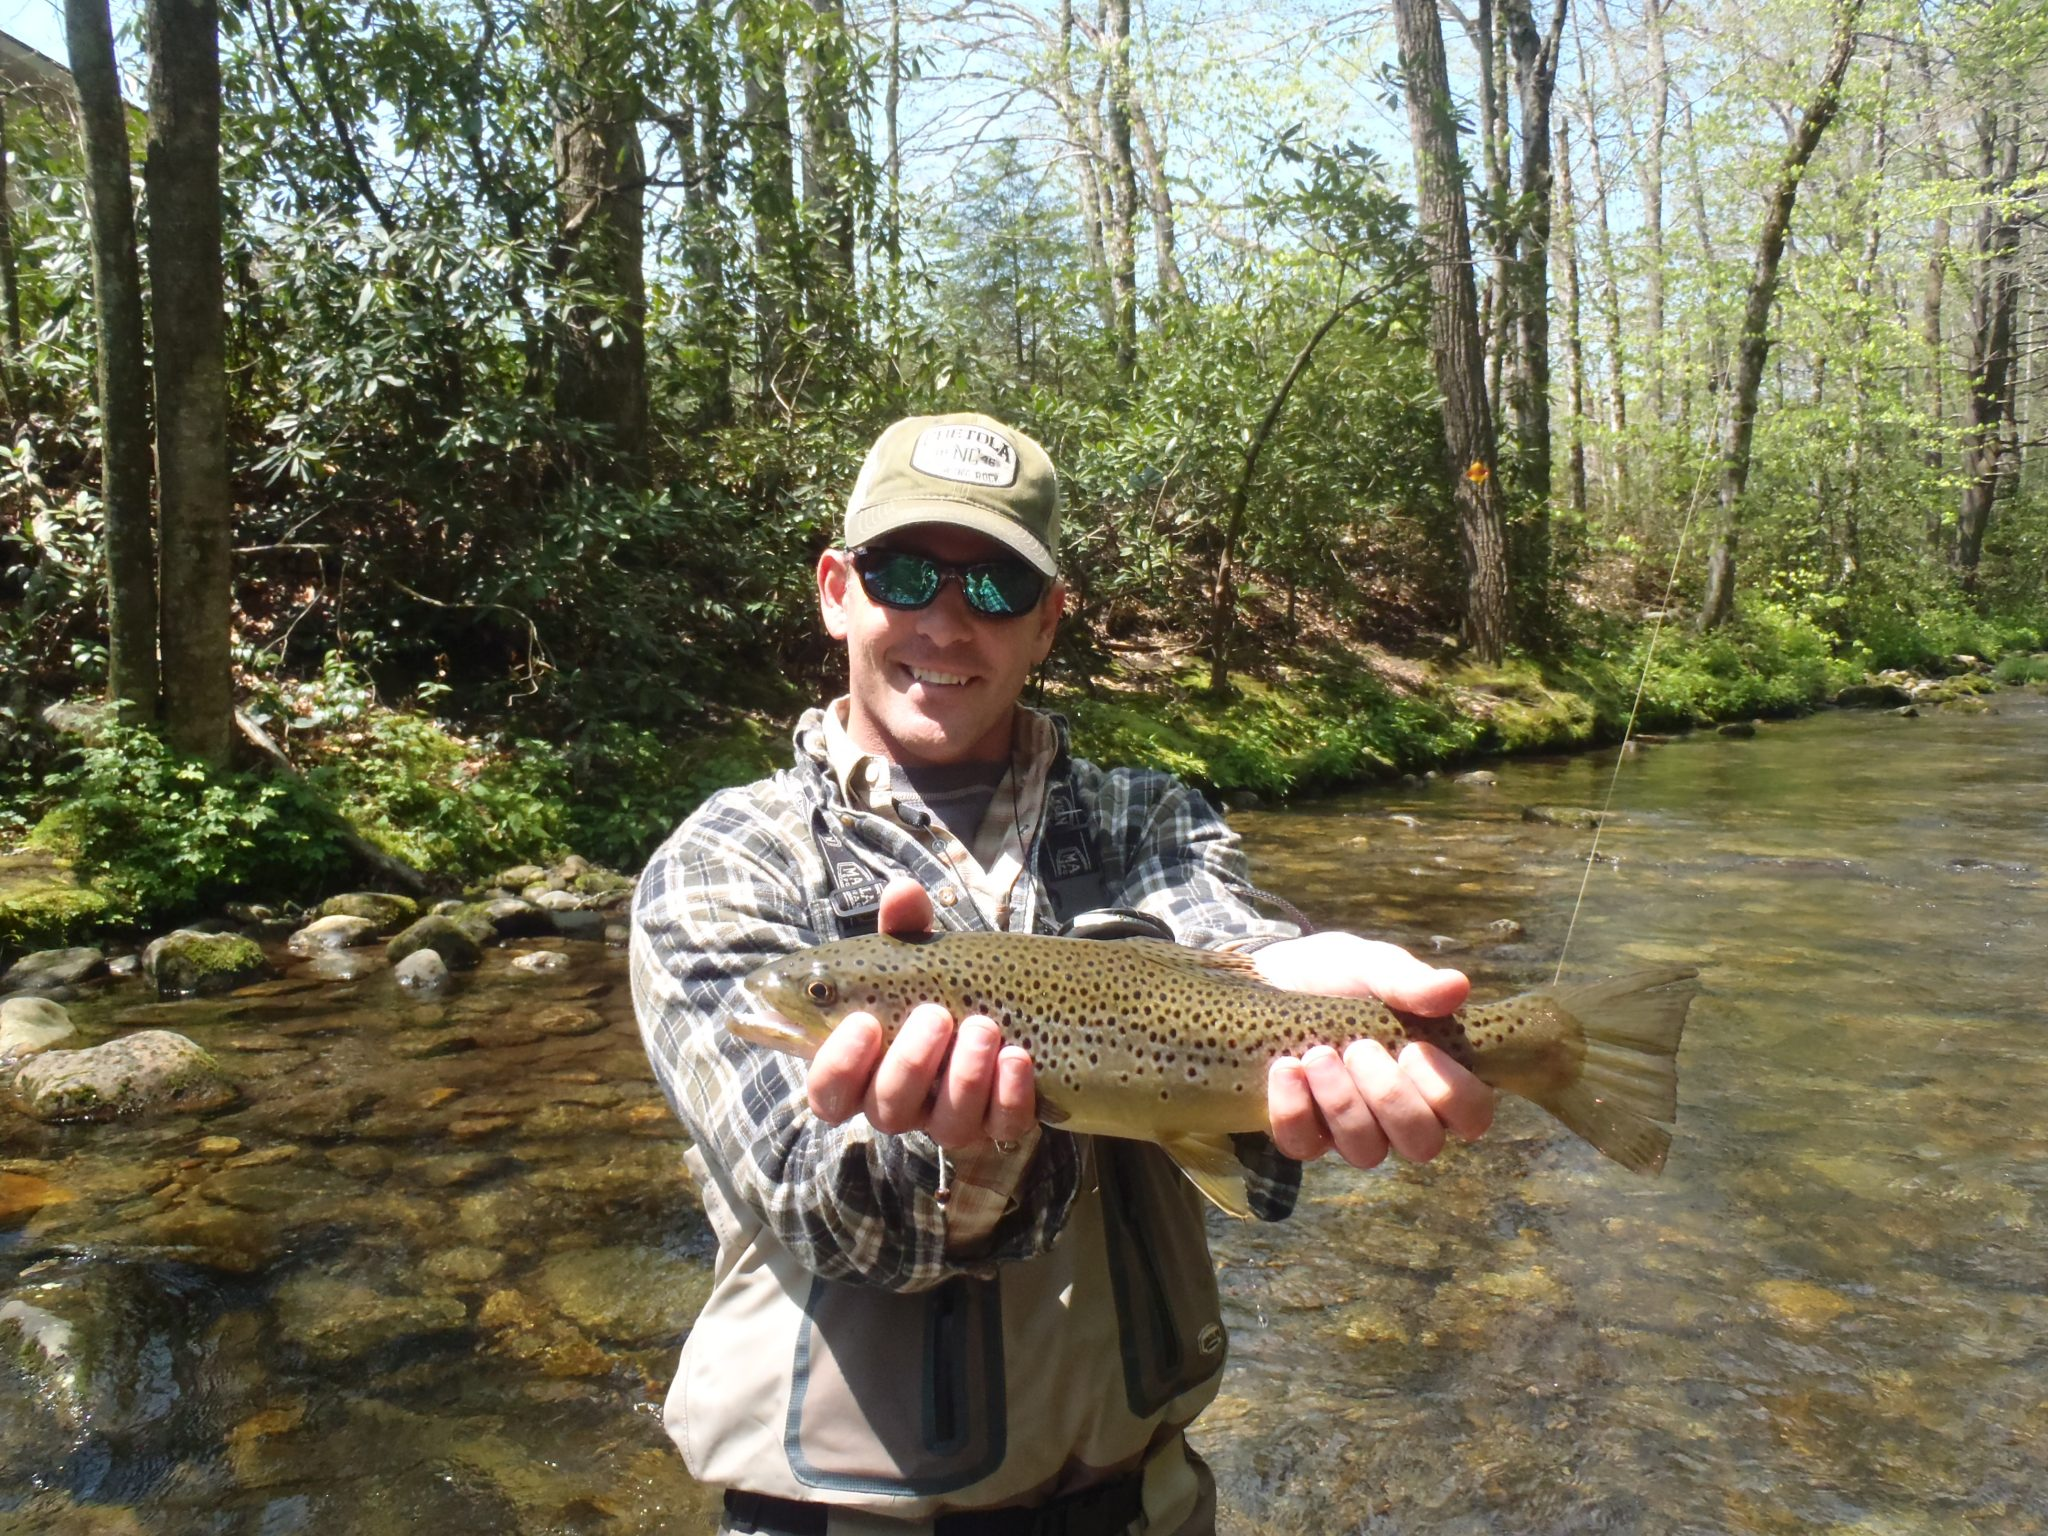 Davidson river fishing report may 15 2012 curtis for Green river fly fishing report